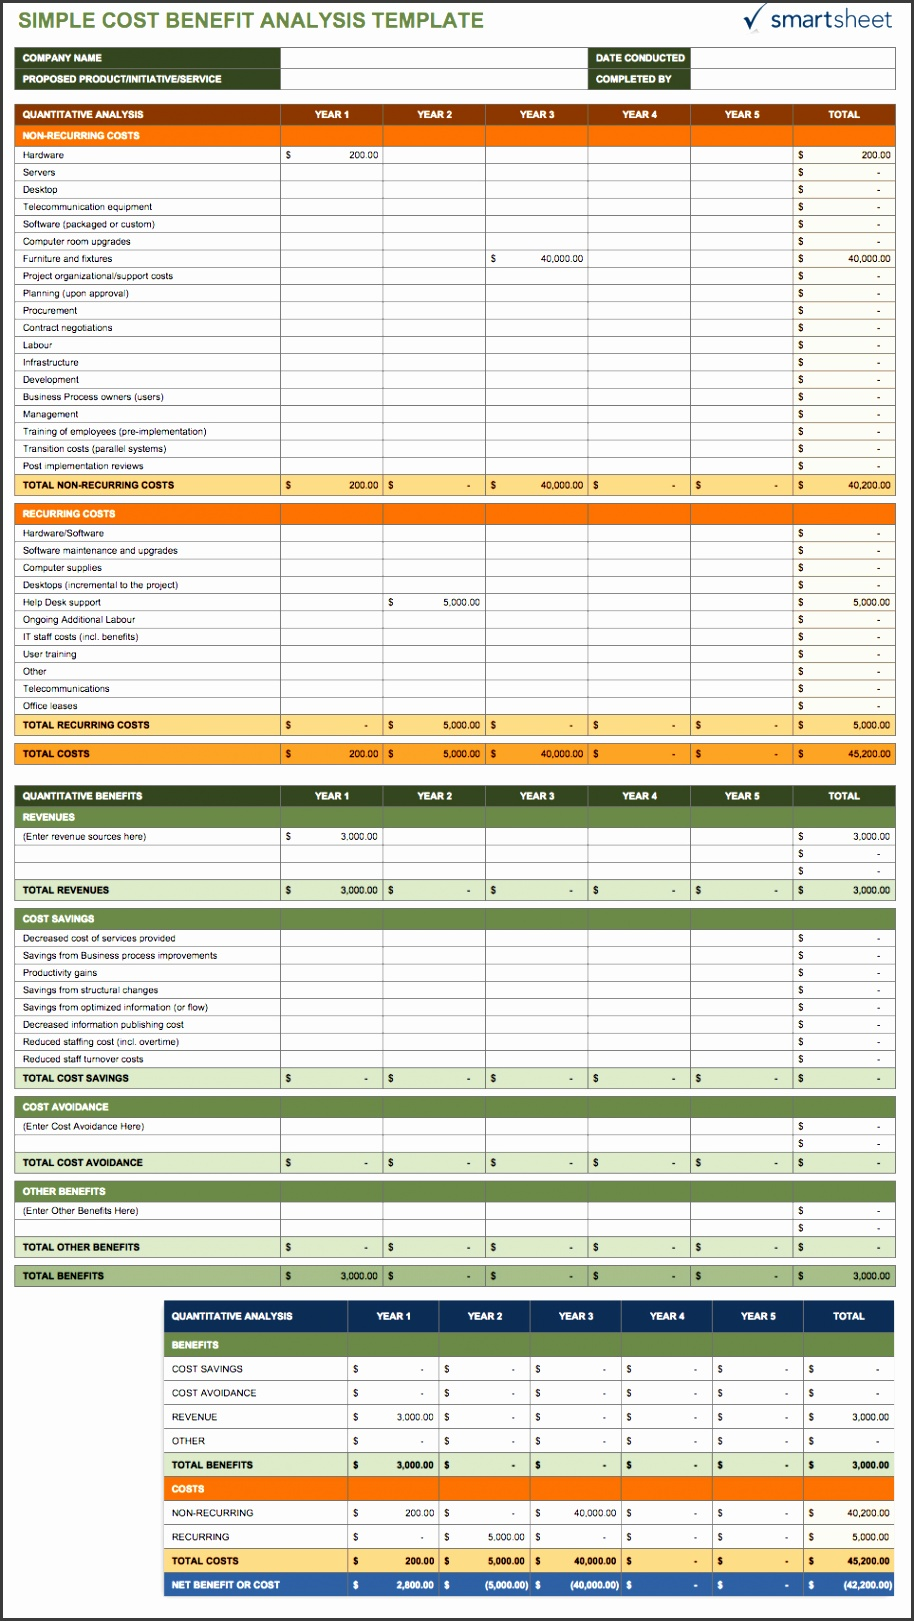 IC SimpleCostBenefitAnalysis This cost benefit analysis template